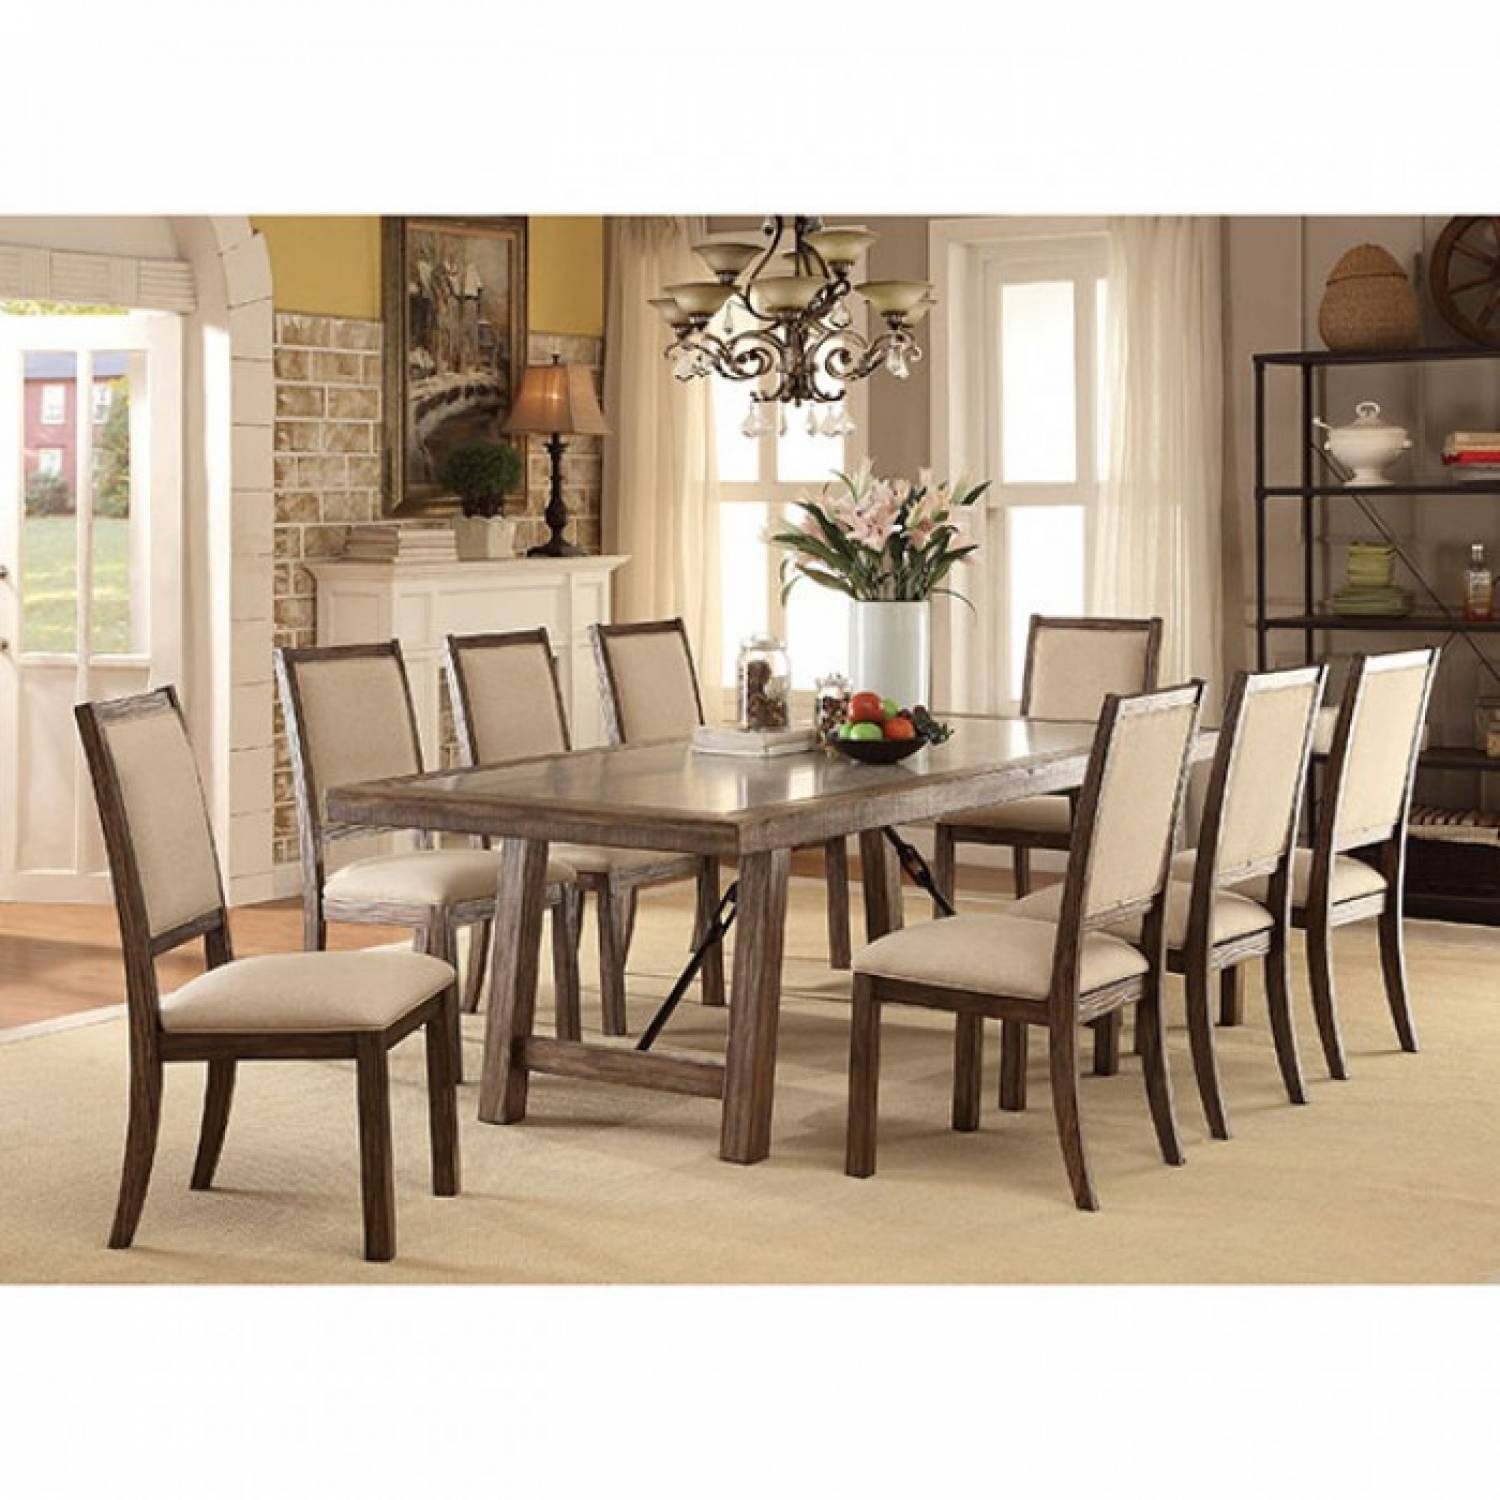 Dining Table 8 Chairs Colettte Dining Table 8 Chairs Cm3562t Gr9